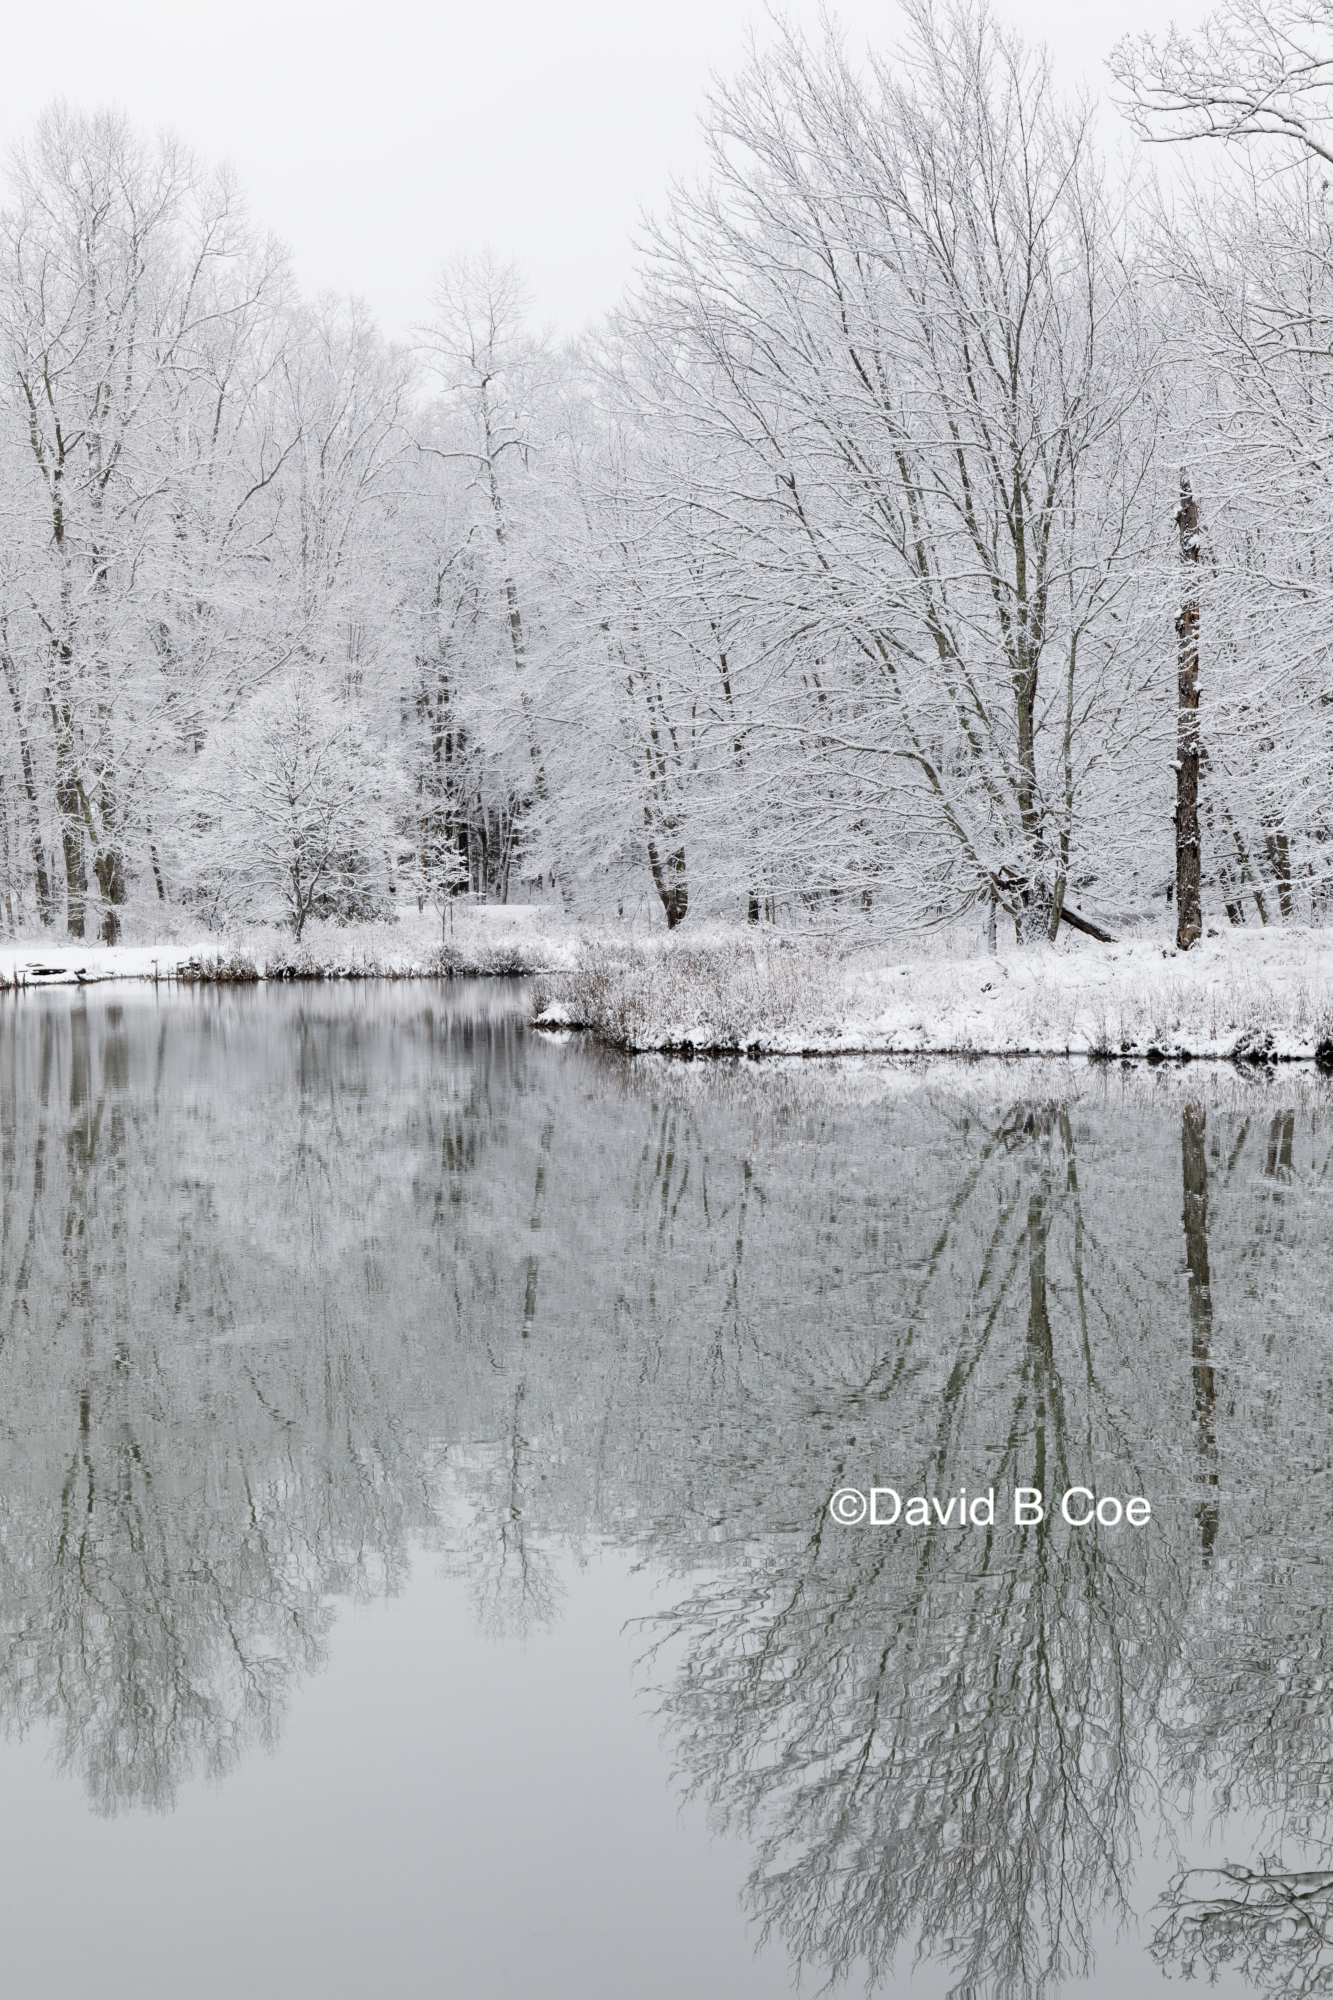 Pond in Snow II, by David B. Coe